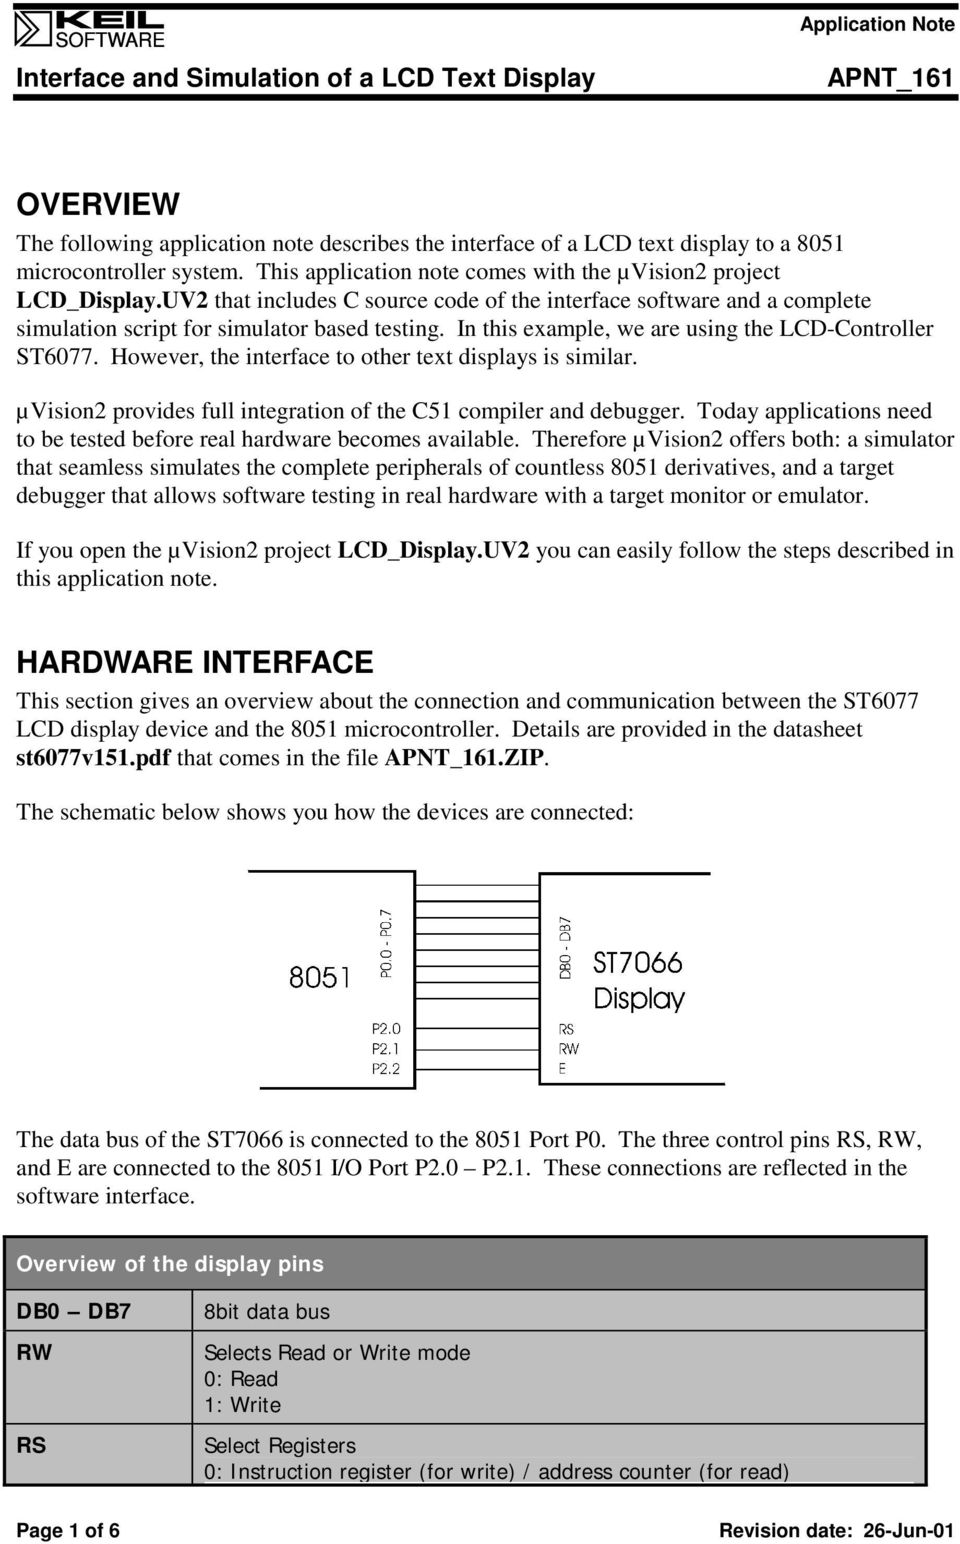 Interface And Simulation Of A Lcd Text Display Pdf Circuitdiagramtointerfaceglcdwith8051 However The To Other Displays Is Similar Vision2 Provides Full Integration